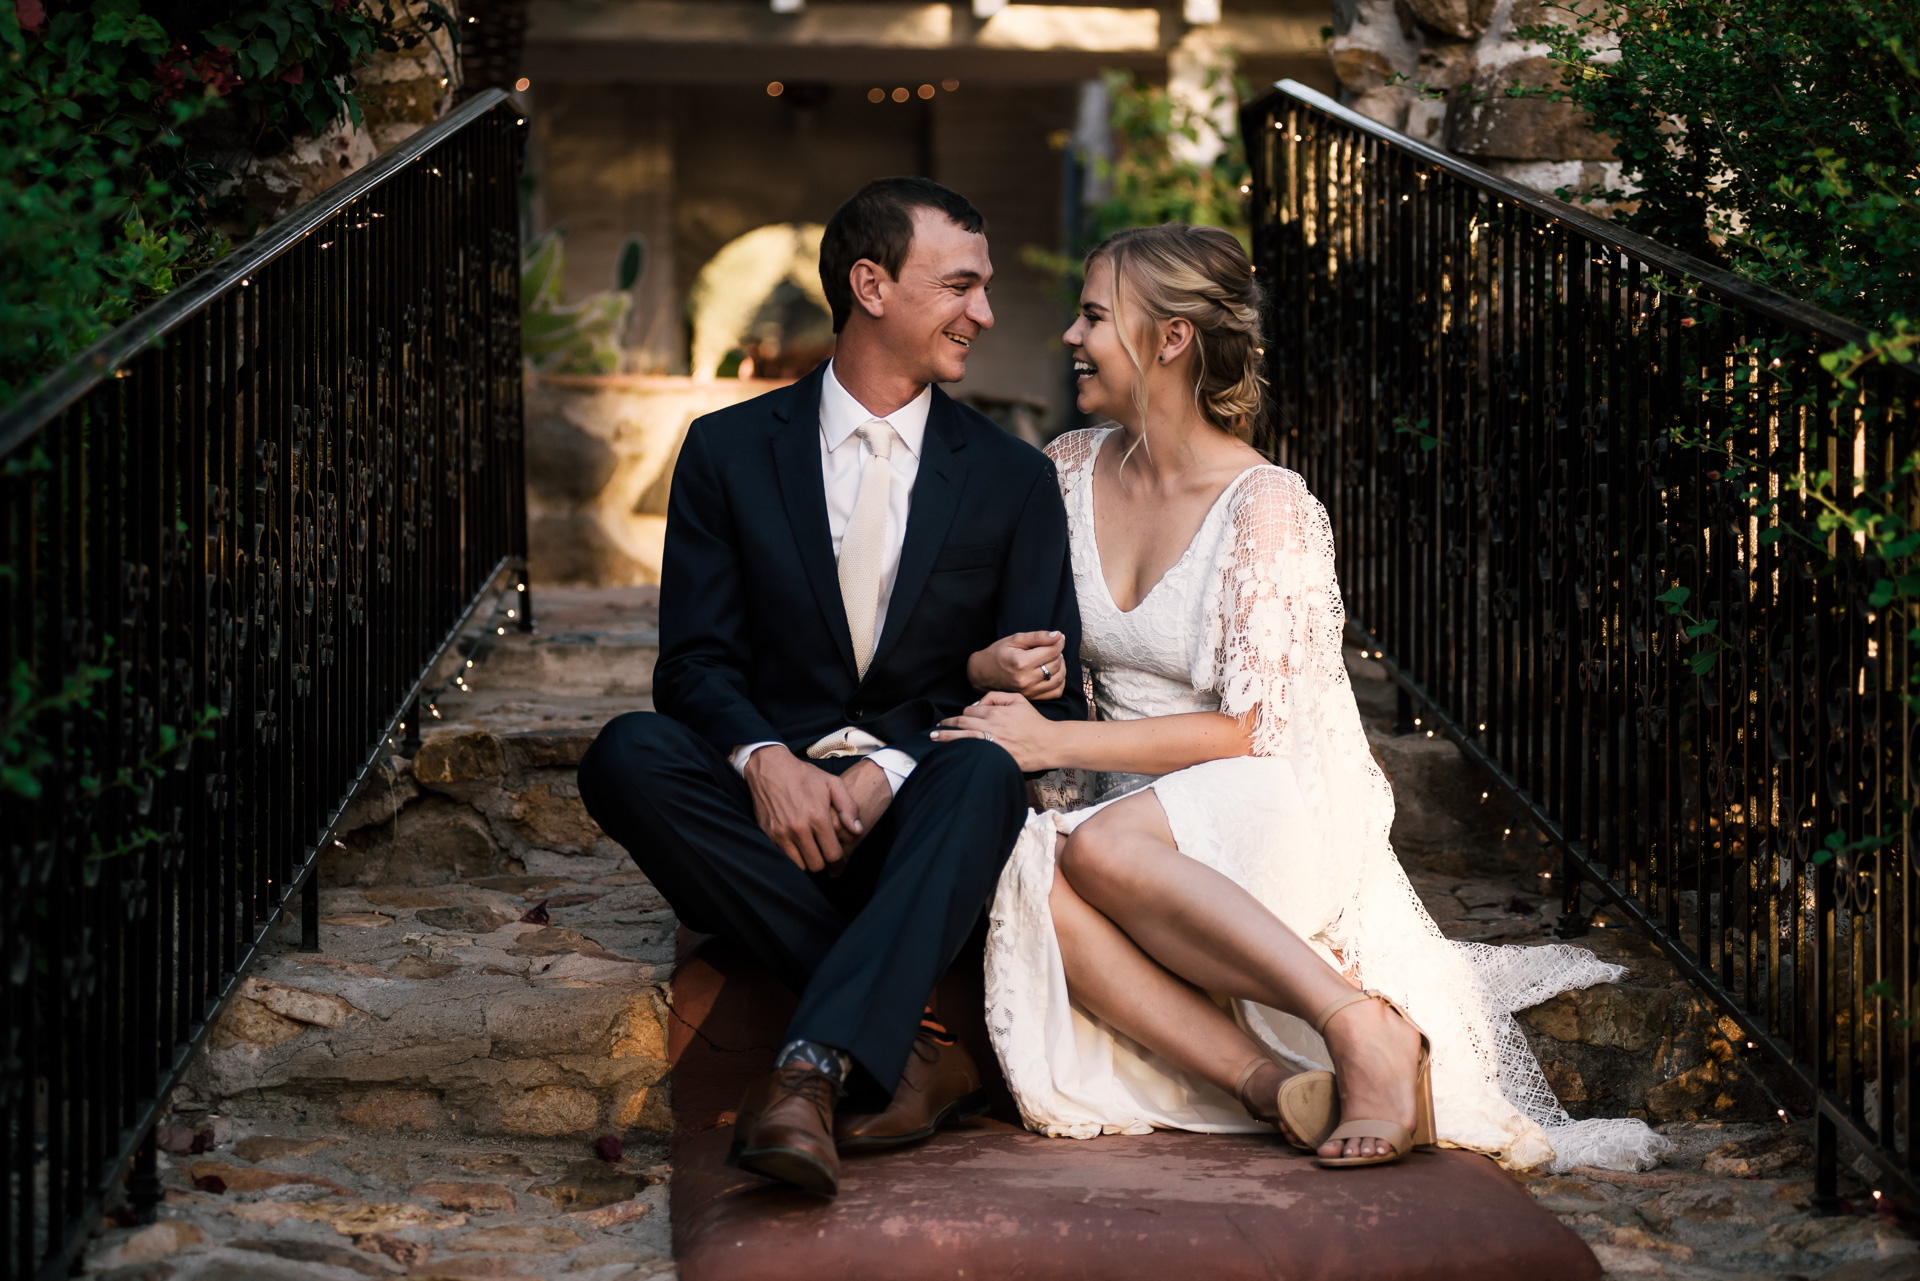 bride and groom sit for a moment and enjoy each others company captured by photographer during romantic wedding at the historic Leo Carrillo Ranch in Carlsbad California